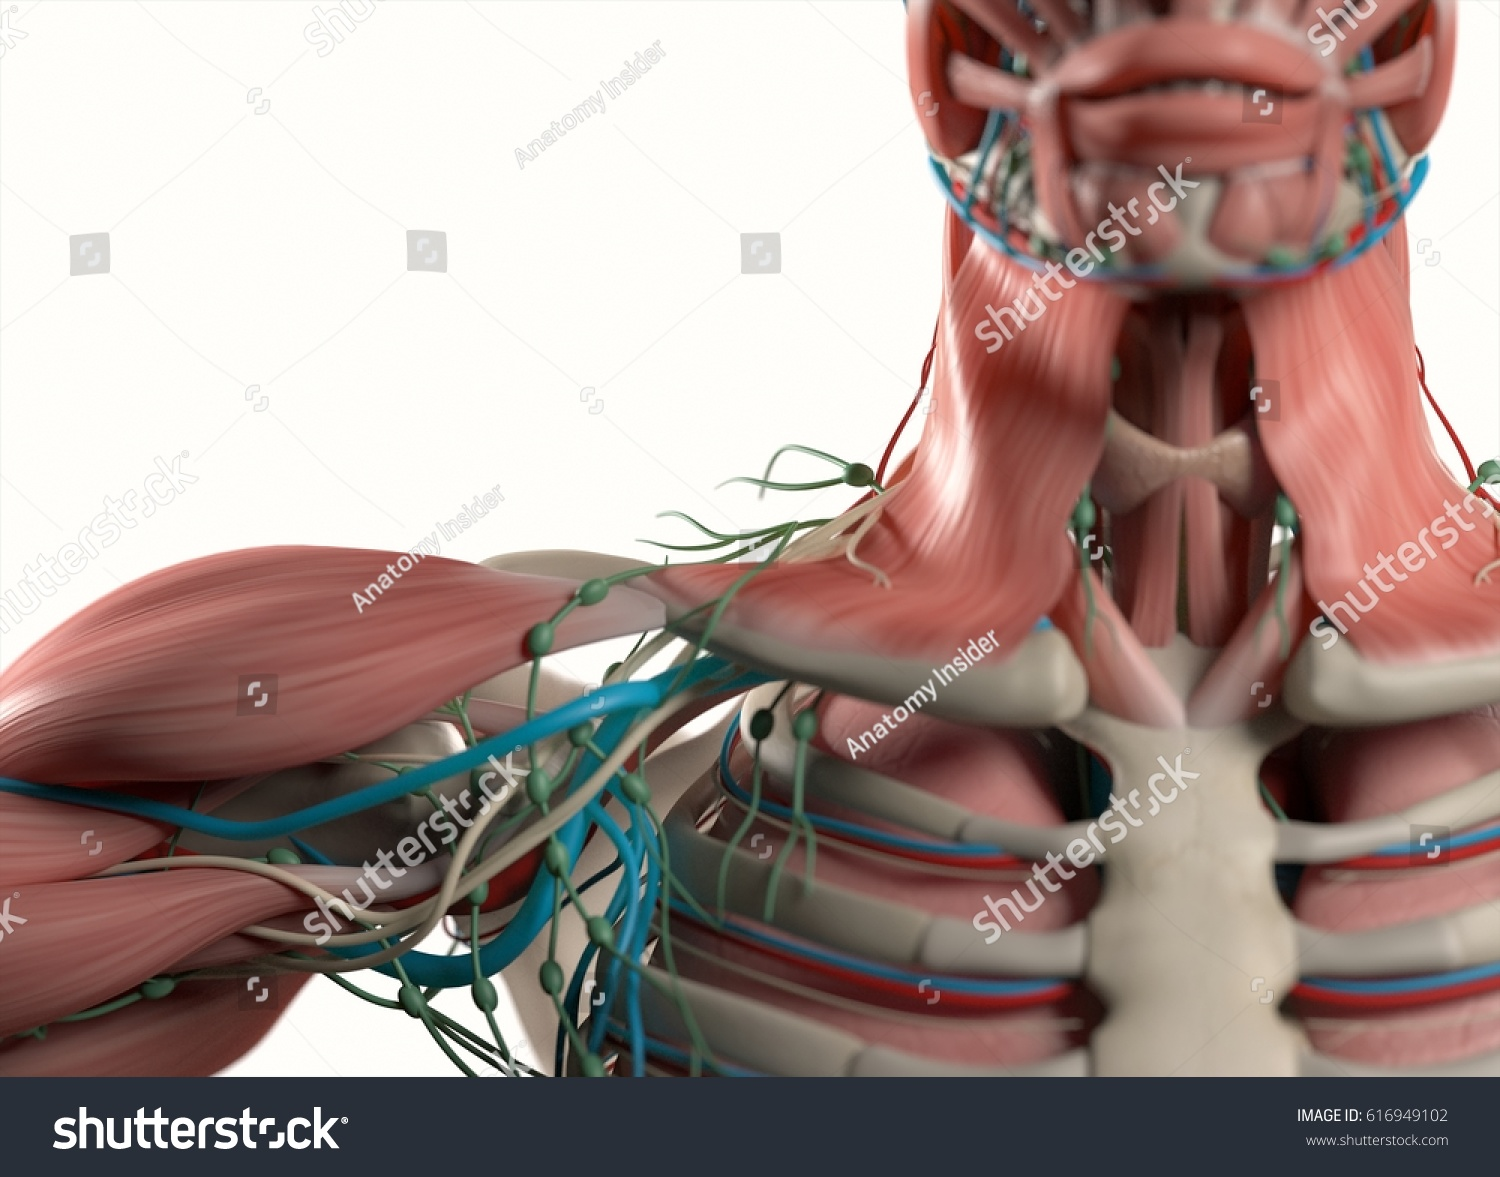 Human Anatomy Shoulder Neck Sternum Chest Stock Illustration